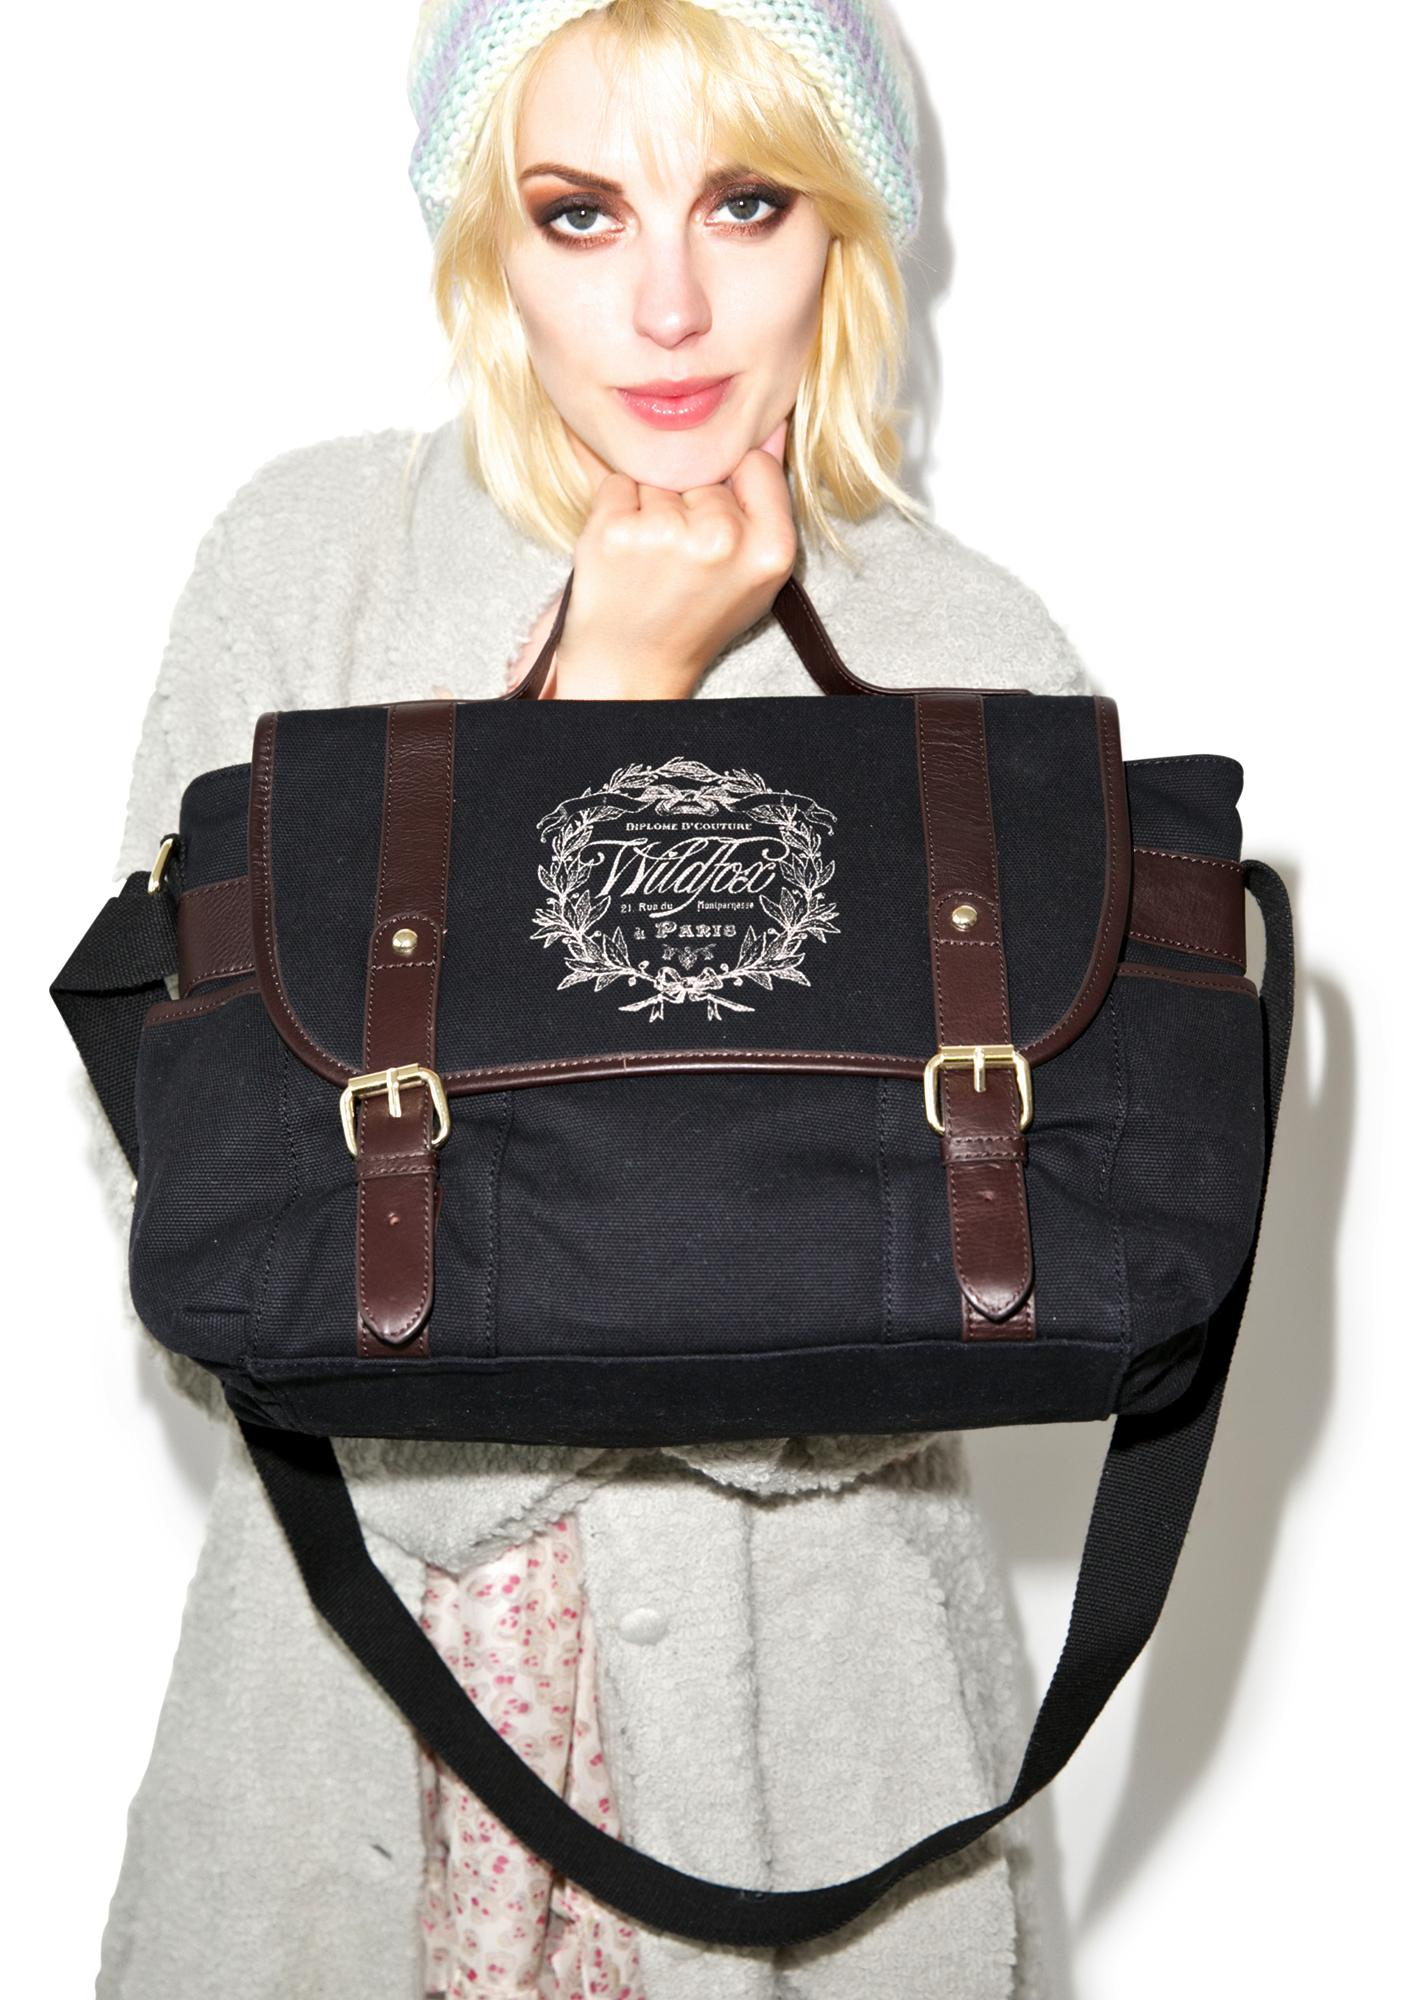 Wildfox Couture Paris Country Crest Messenger Bag